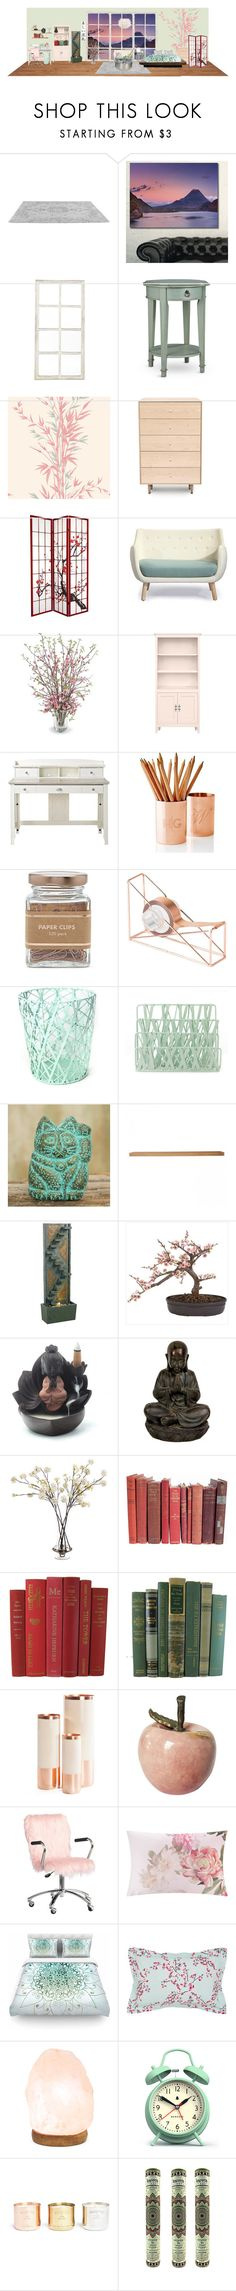 """""""Untitled #504"""" by lessee ❤ liked on Polyvore featuring interior, interiors, interior design, home, home decor, interior decorating, Design Art, Ballard Designs, Improvements and Cole & Son"""